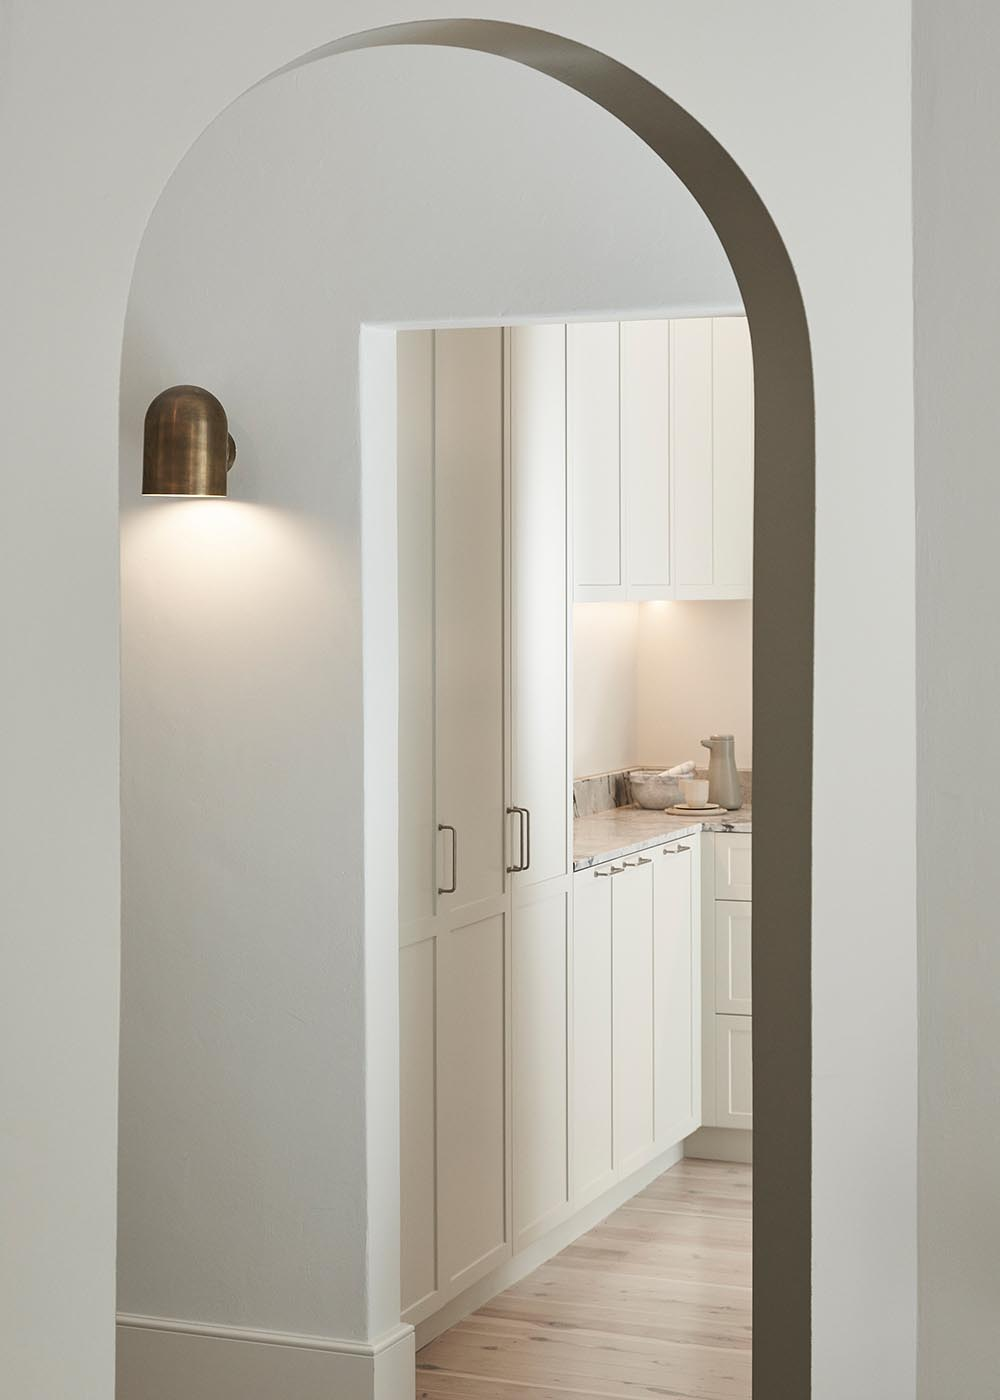 An emphasized curved arch and feature lighting are a subtle nod to Art Deco design elements.